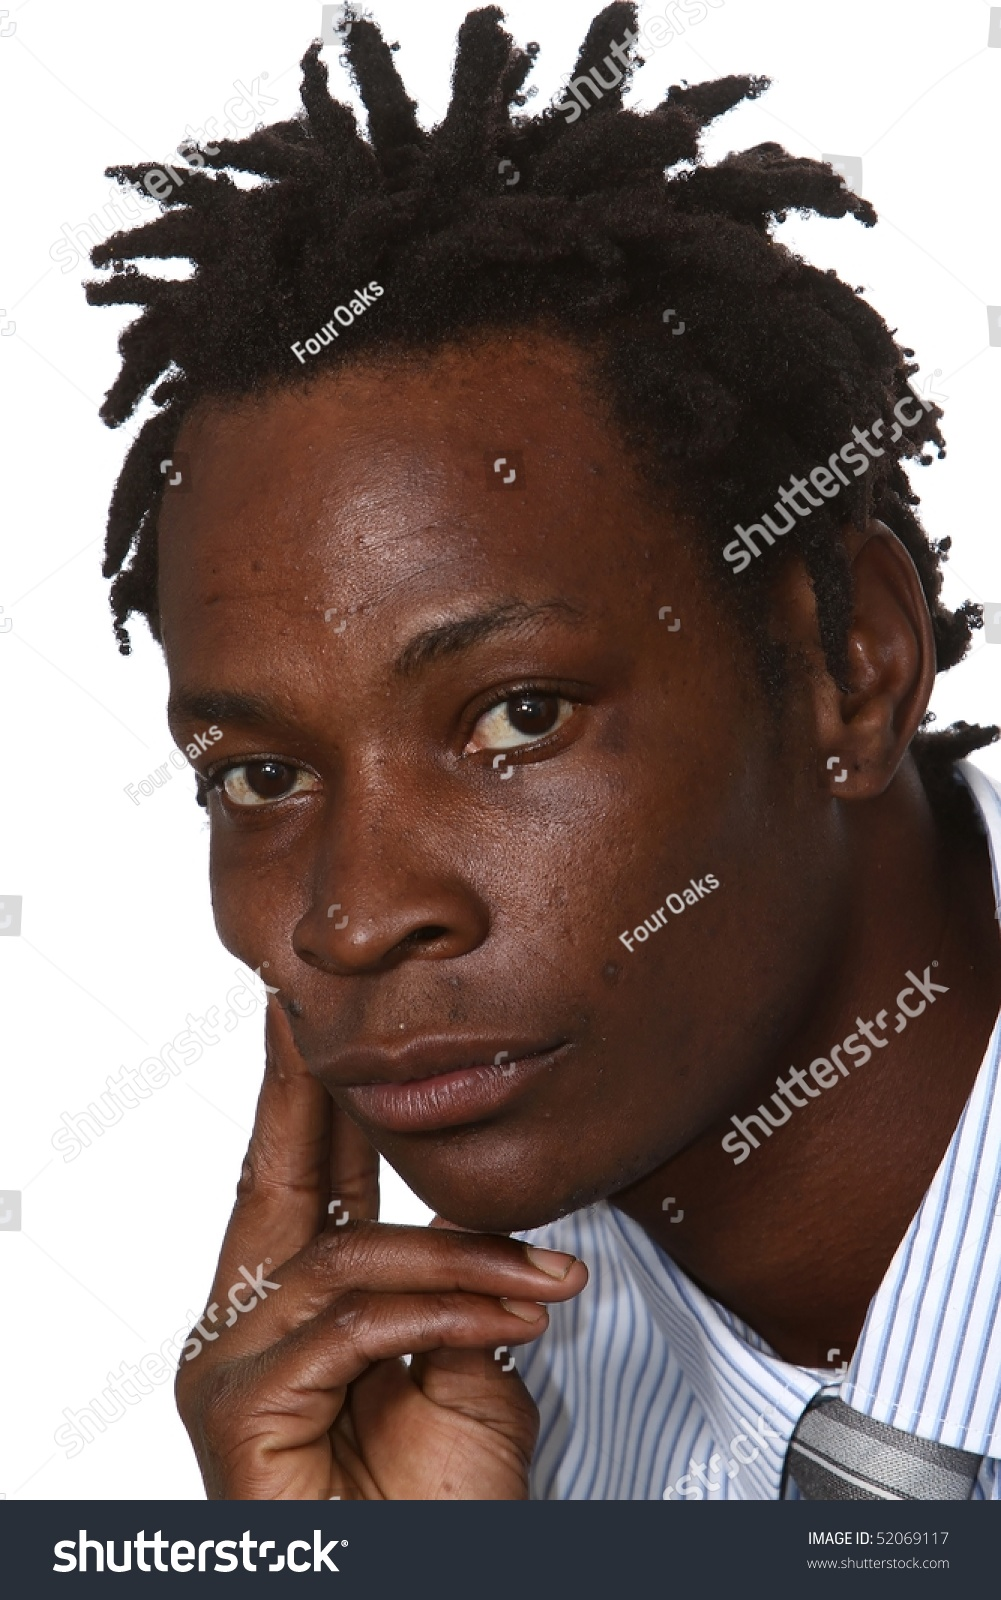 Young Black Business Man With Dreadlocks Hairstyle Stock Photo ...